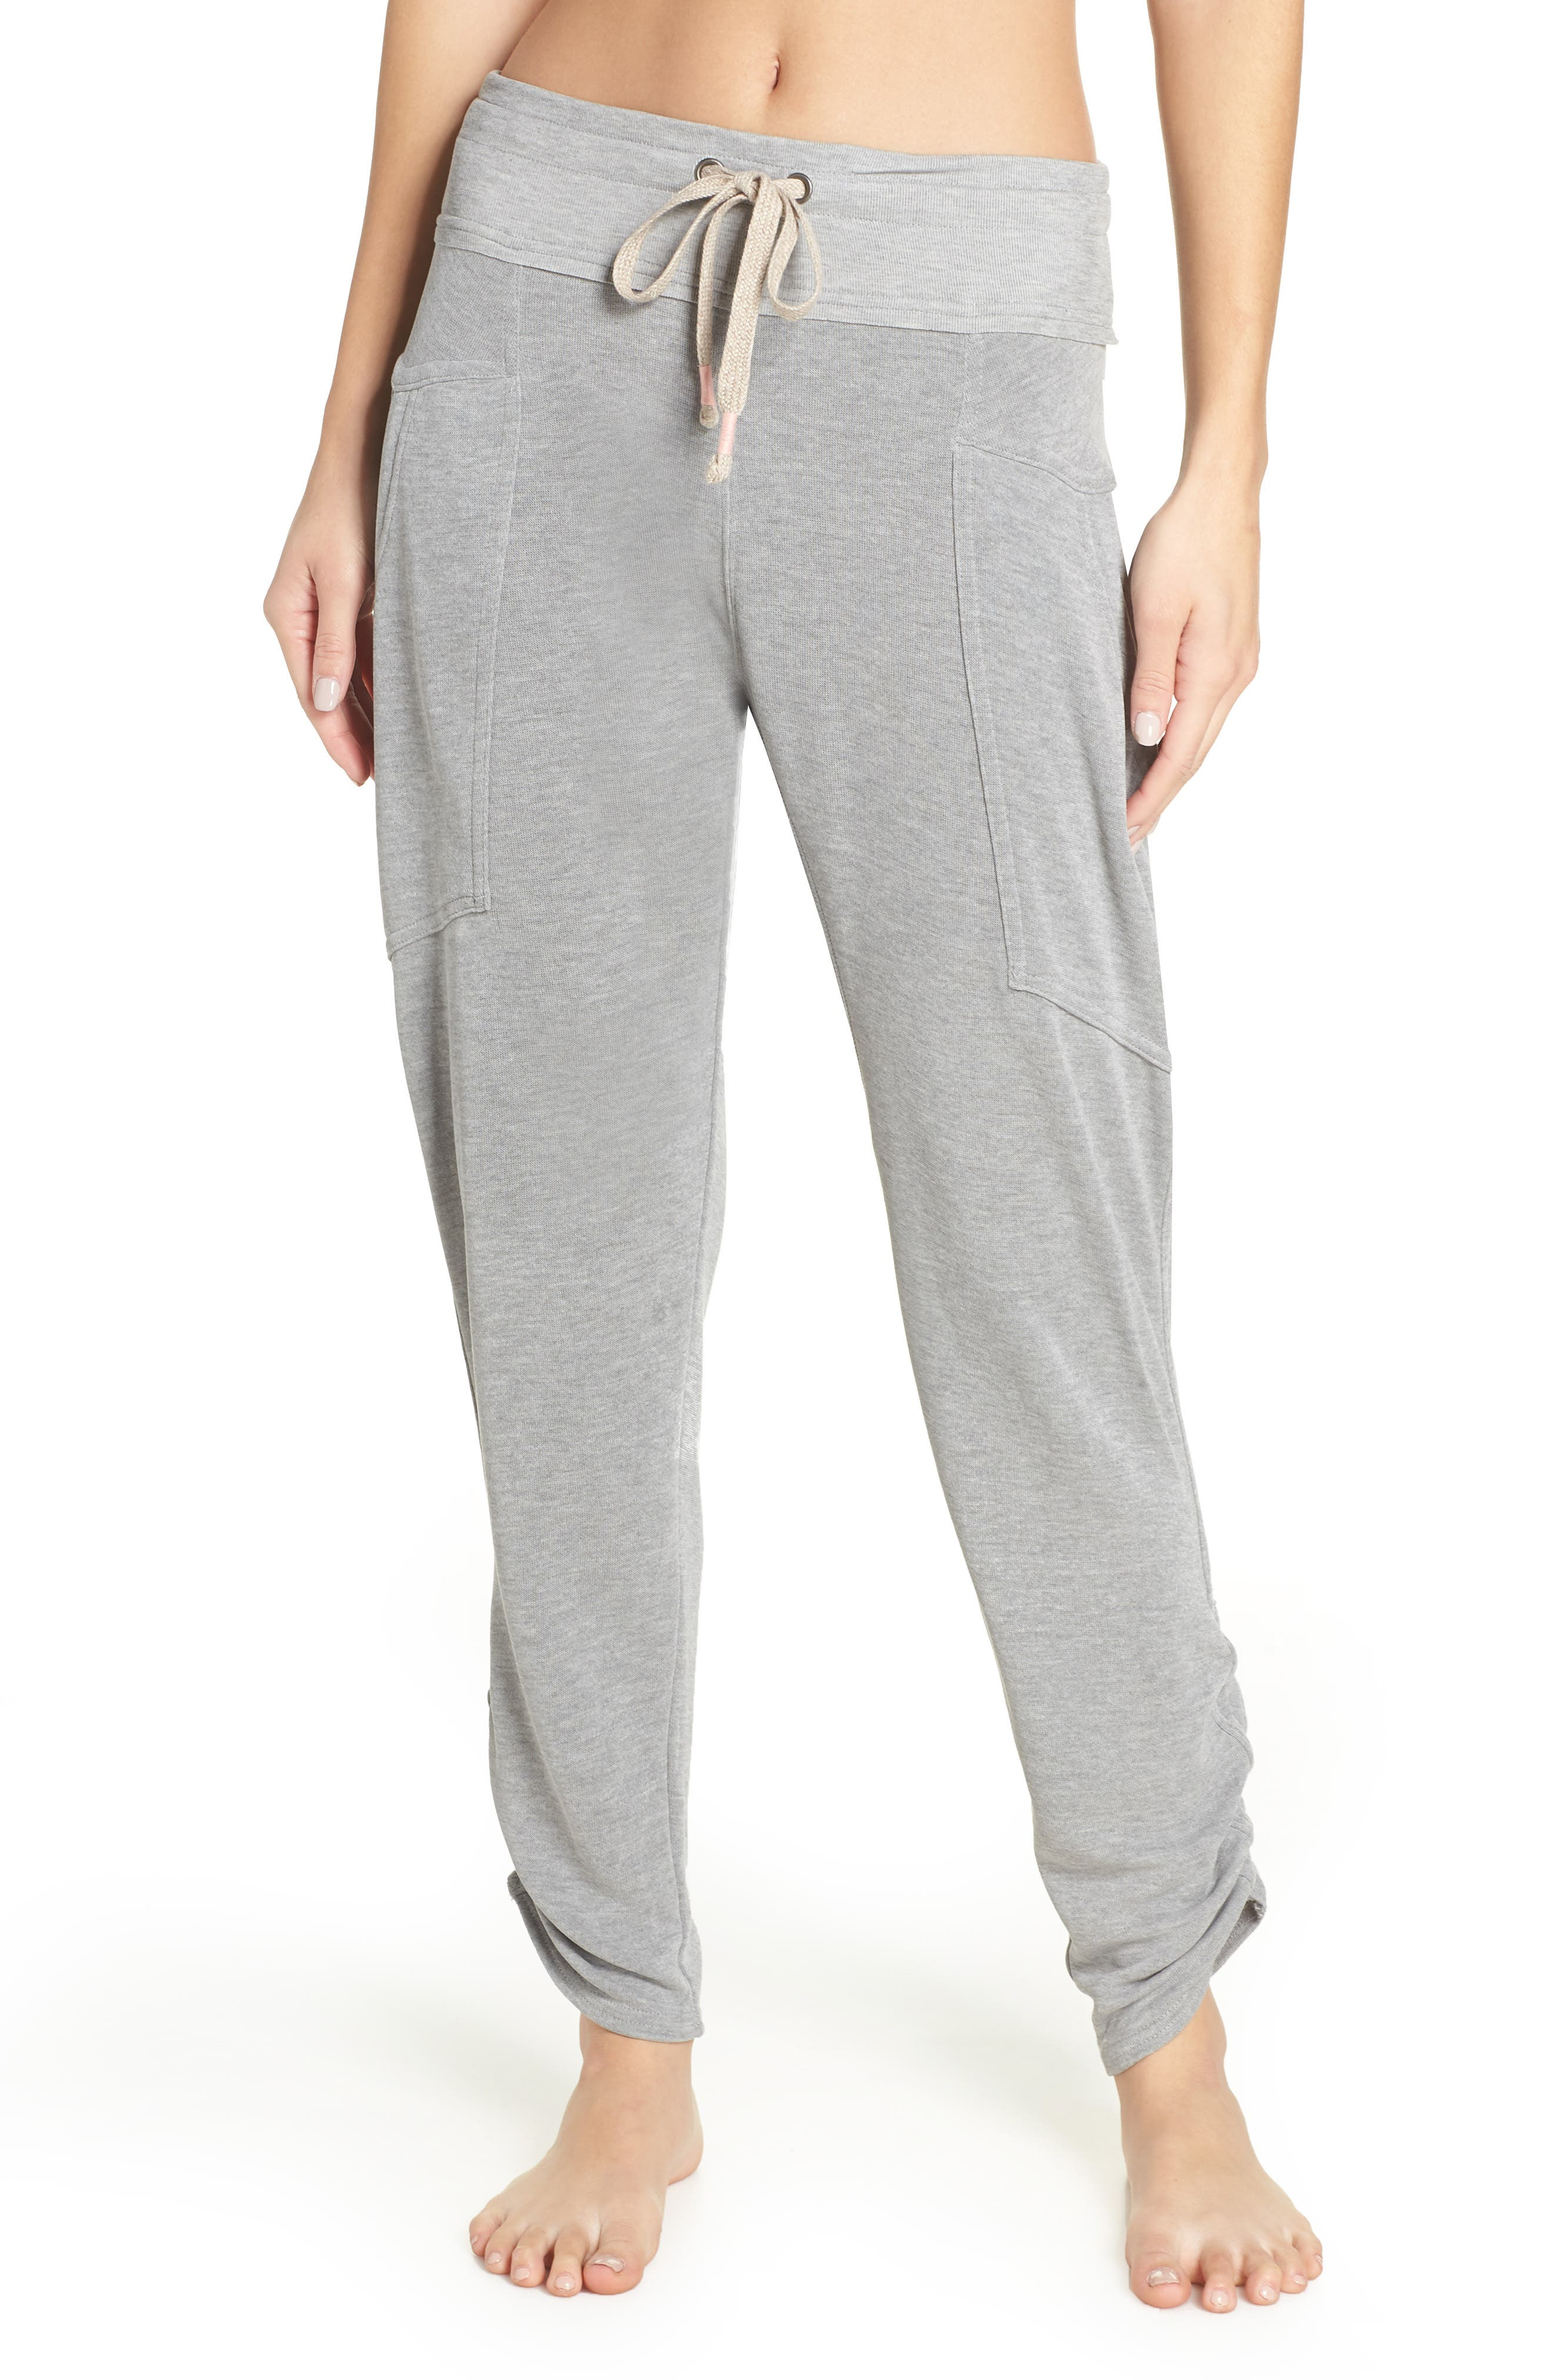 Free People FP Movement Ready Go Jogger Pants,                         Main,                         color, GREY COMBO